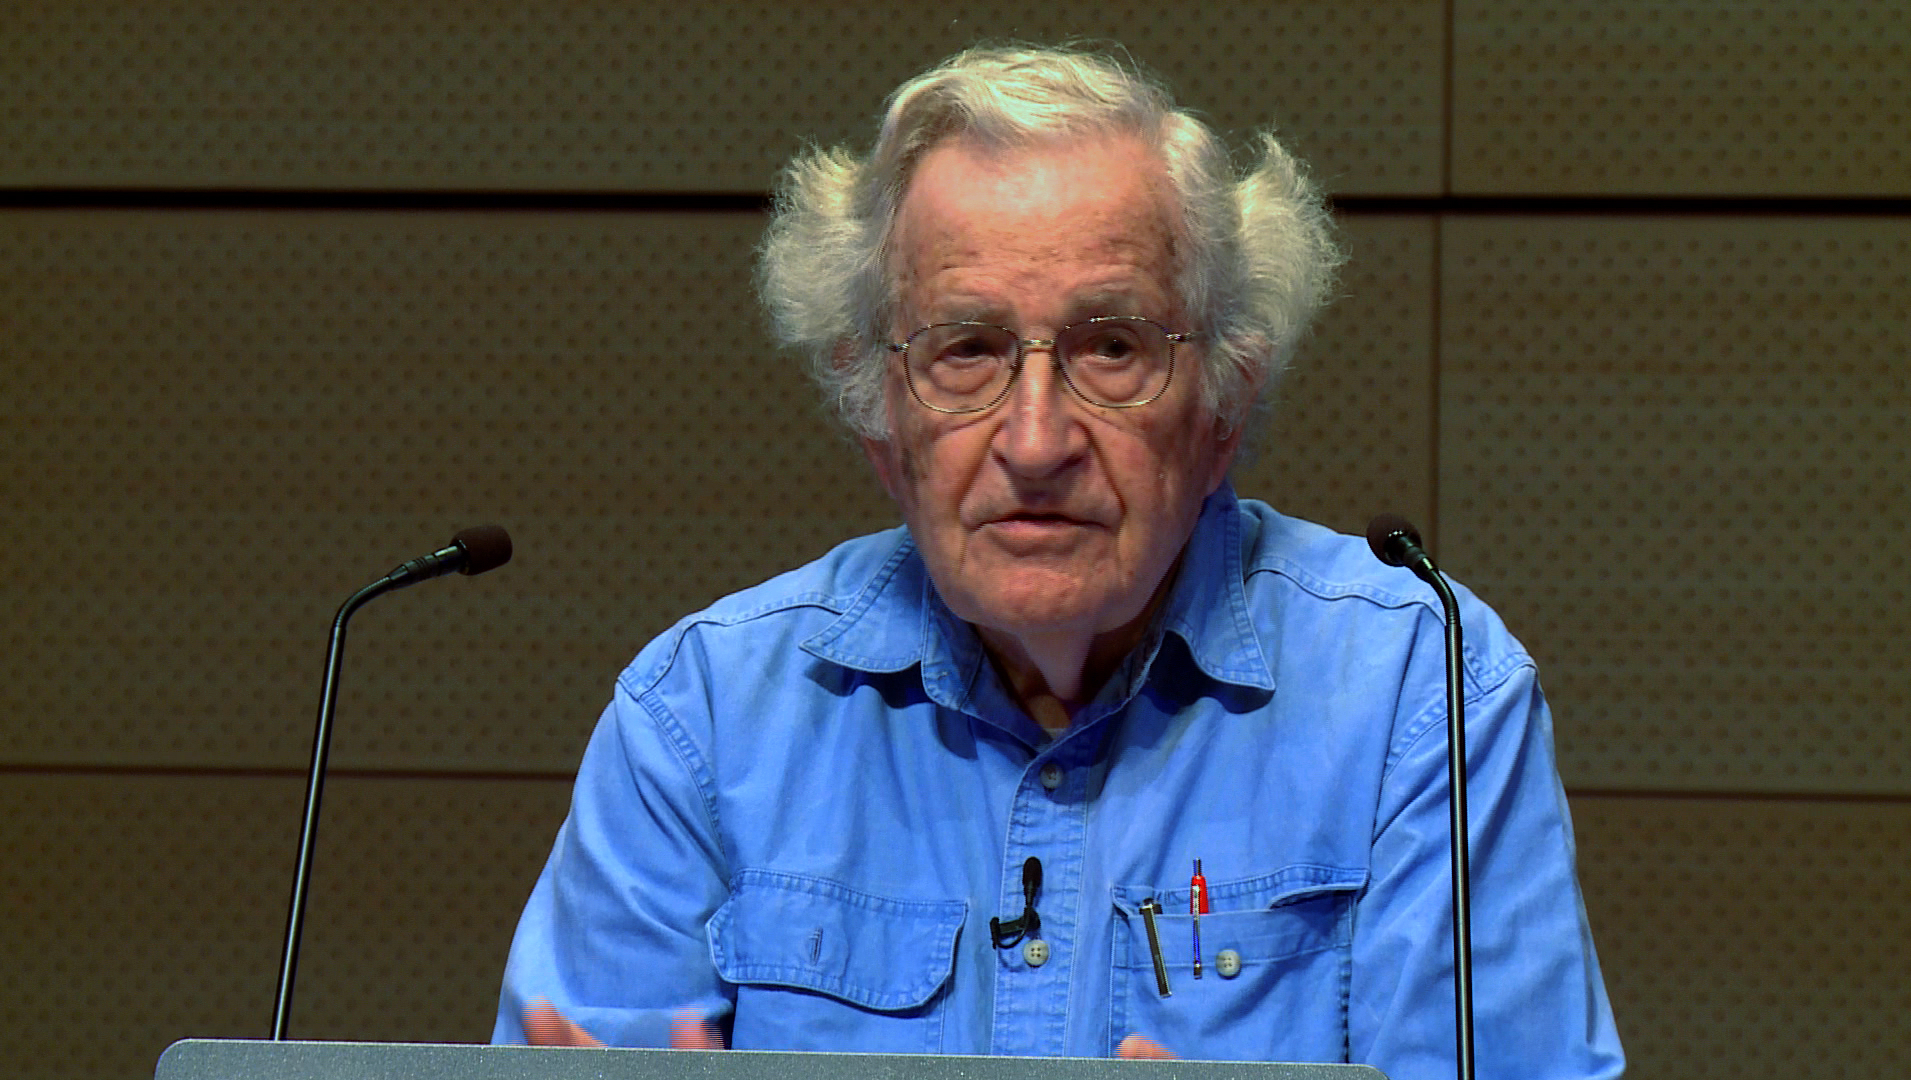 noam chomsky on george orwell  the suppression of ideas